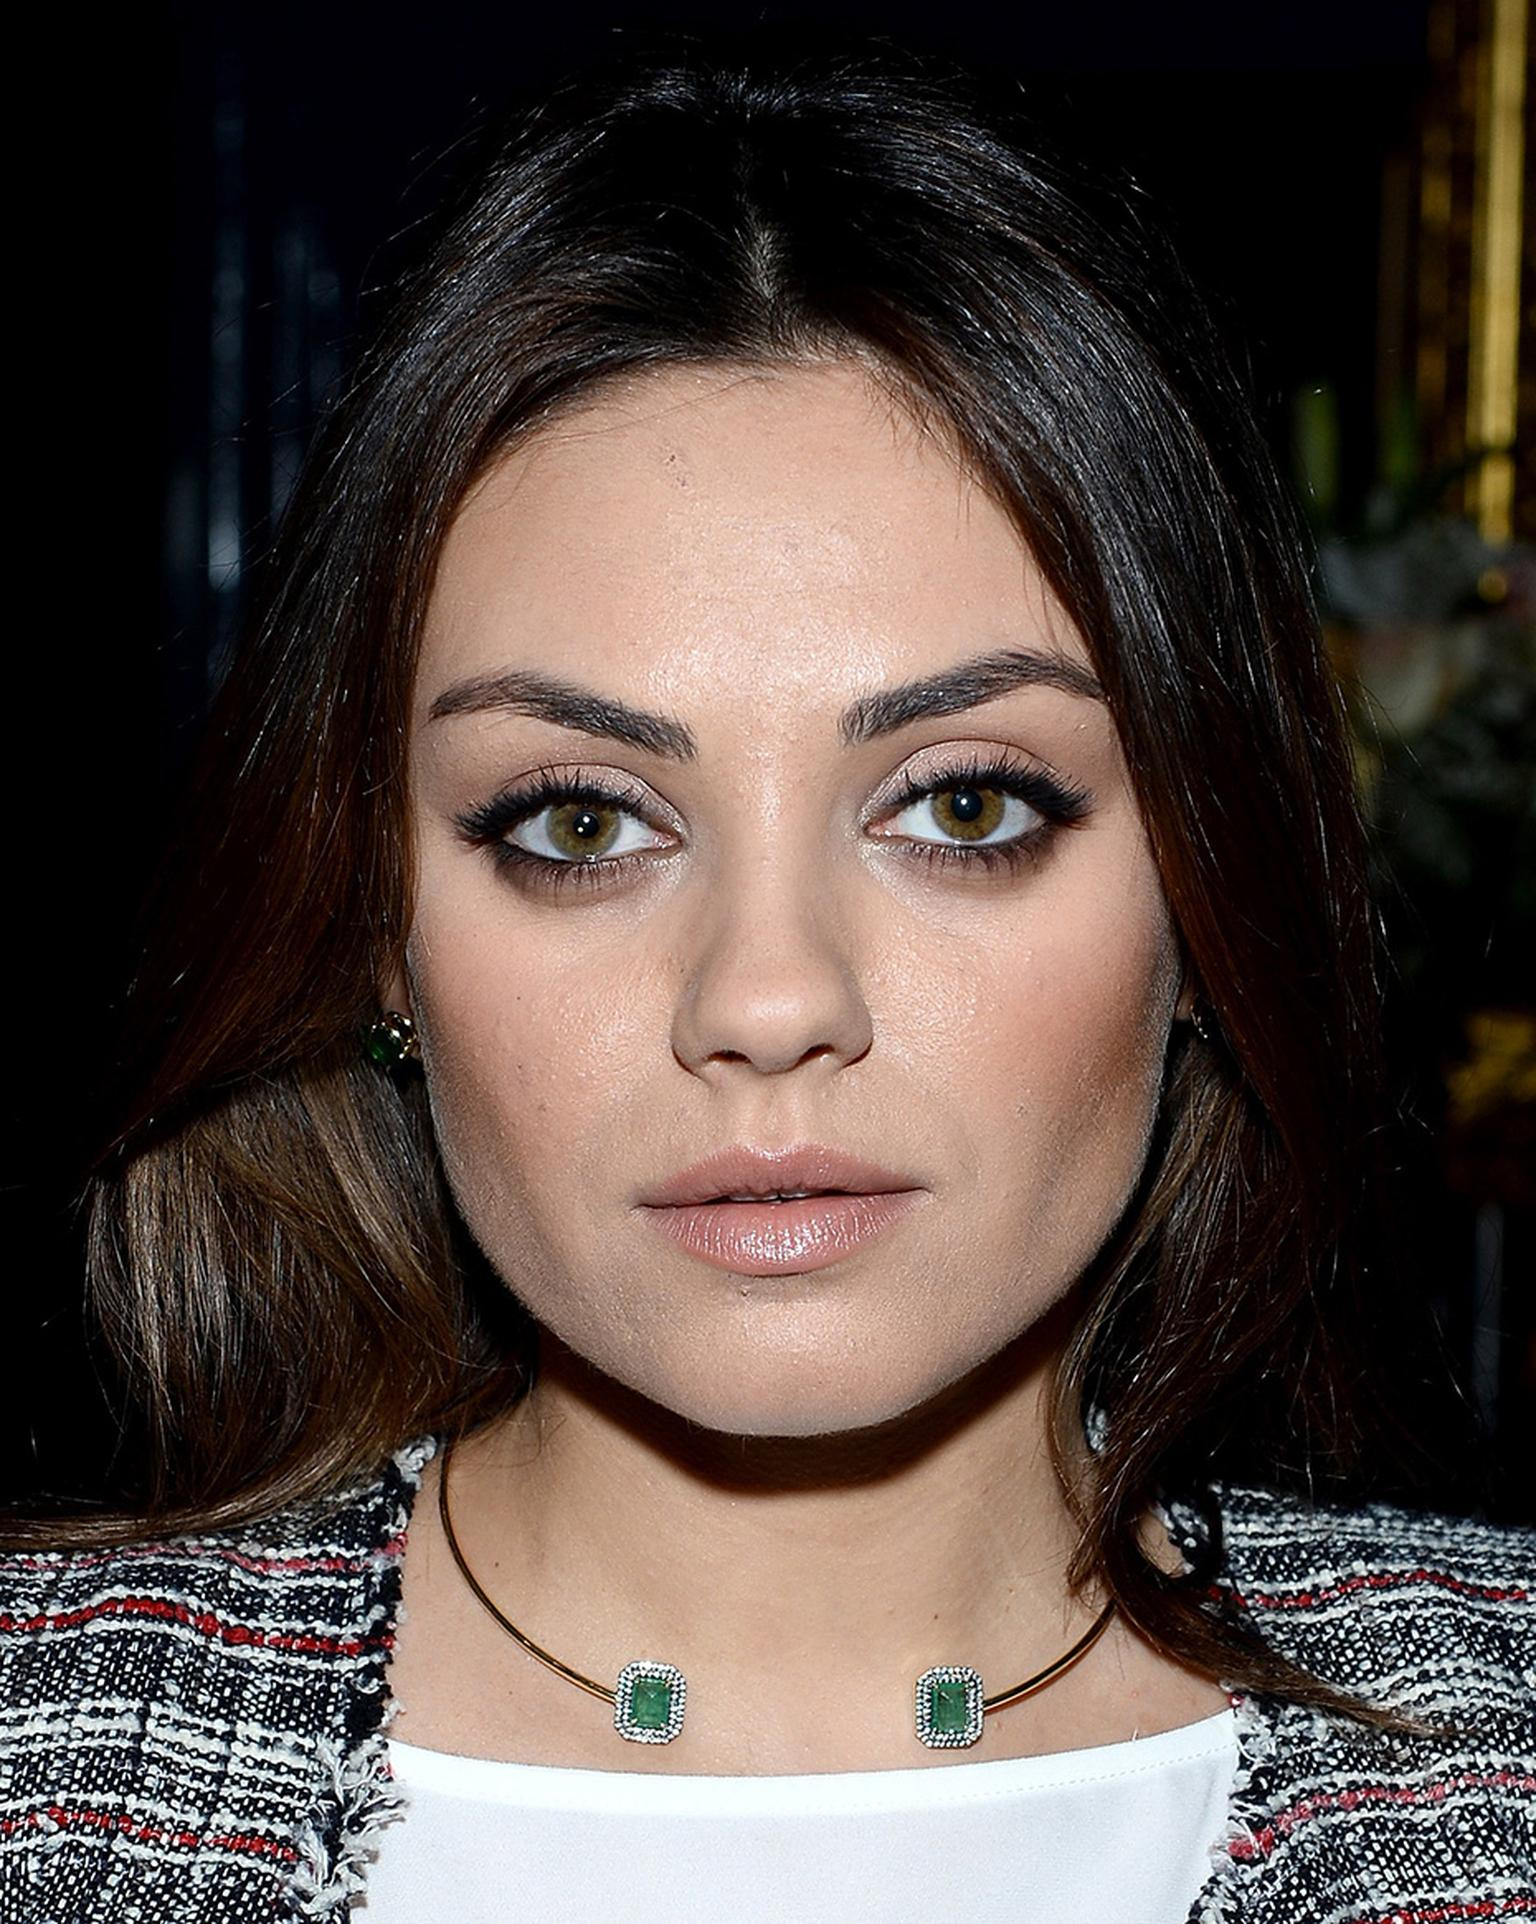 Mila Kunis wearing the Jemma Wynne emerald collar in yellow gold, created in collaboration with Gemfields